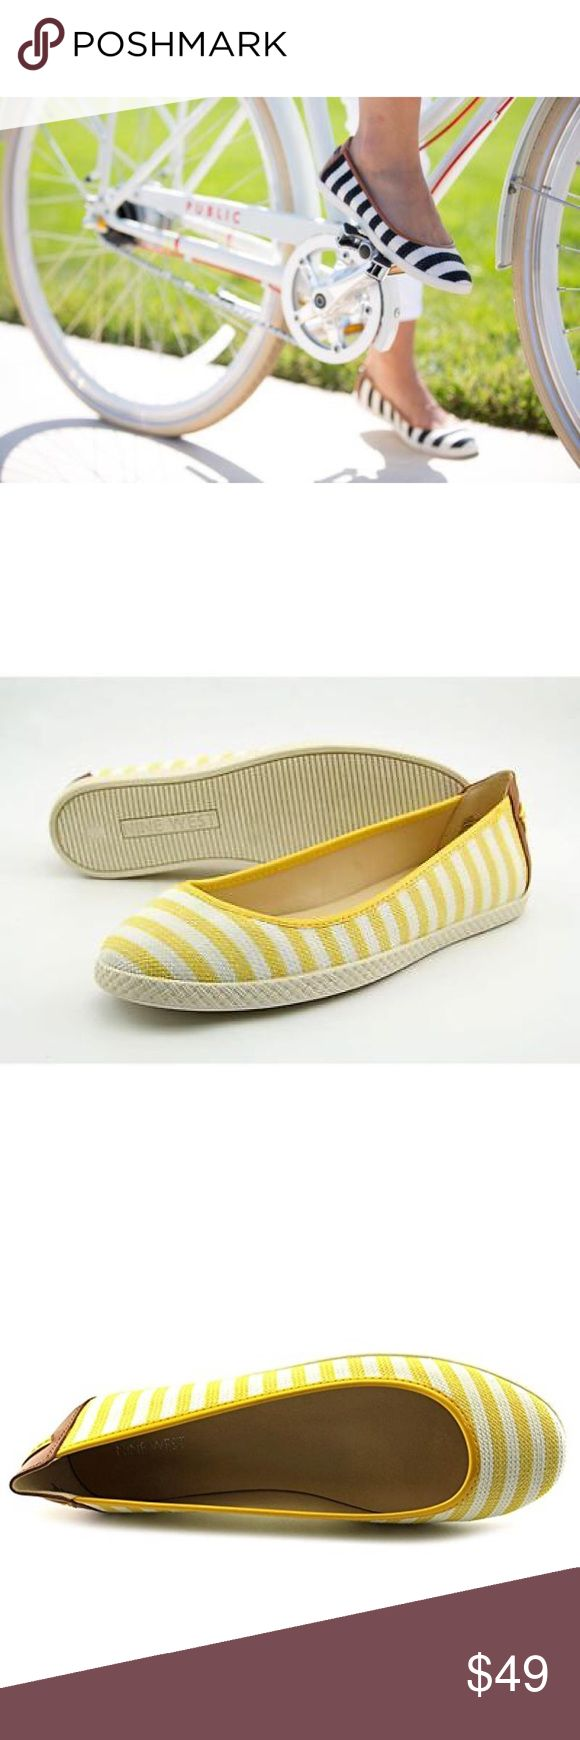 Nautical Yellow Linen Ballet Flats Add a pop of color to your casual style with the striped flats from Nine West. This weekend flat is the perfect go-to for summer festivals and afternoons at the mall!  Round closed-toe Slip-on design Contrasting back counter with stitched detailing Materials: Textile Upper. Cushioned Footbed Nine West Shoes Flats & Loafers